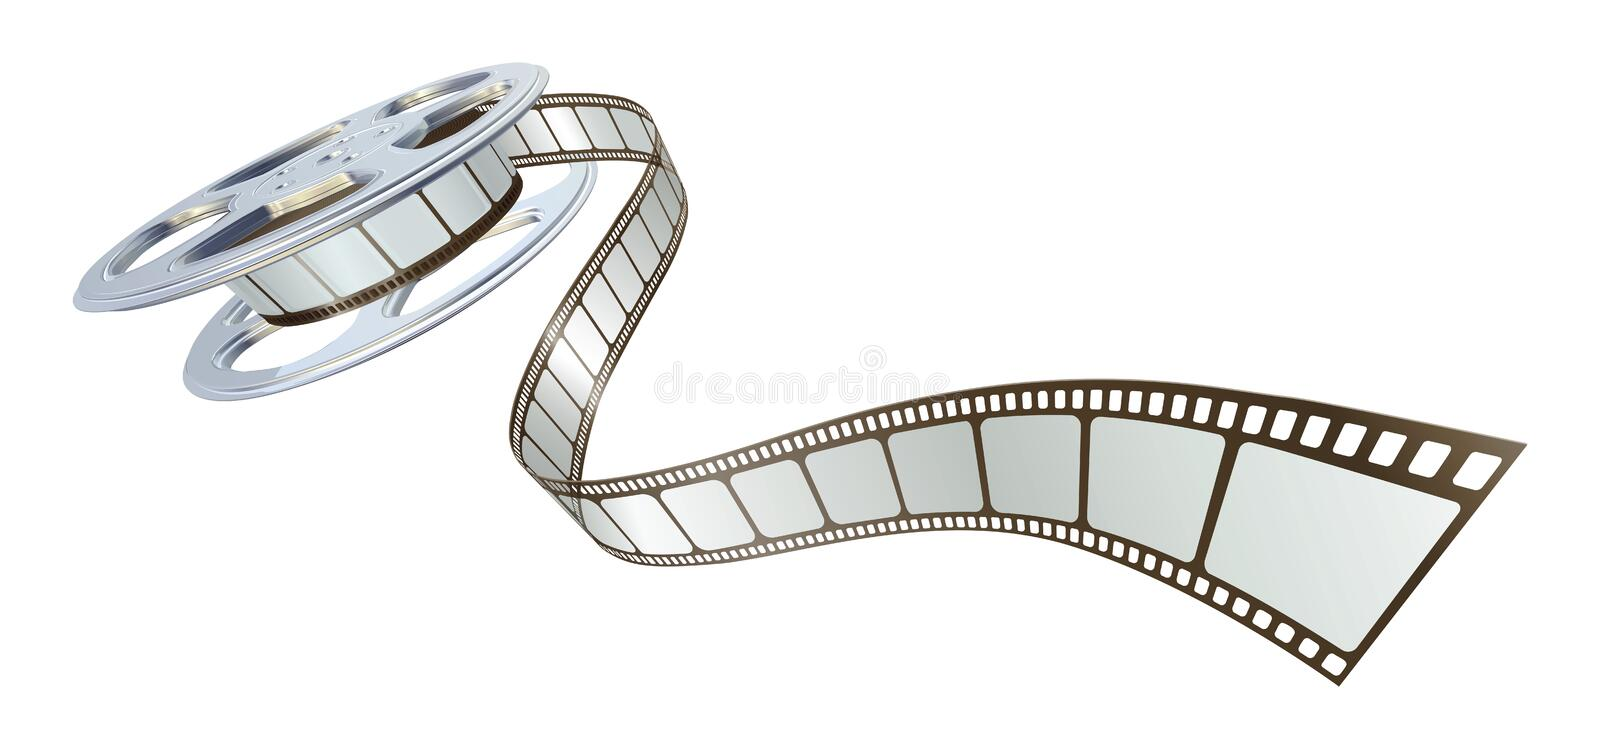 Download Movie Film Spooling Out Of Film Reel Stock Vector - Image: 20160844